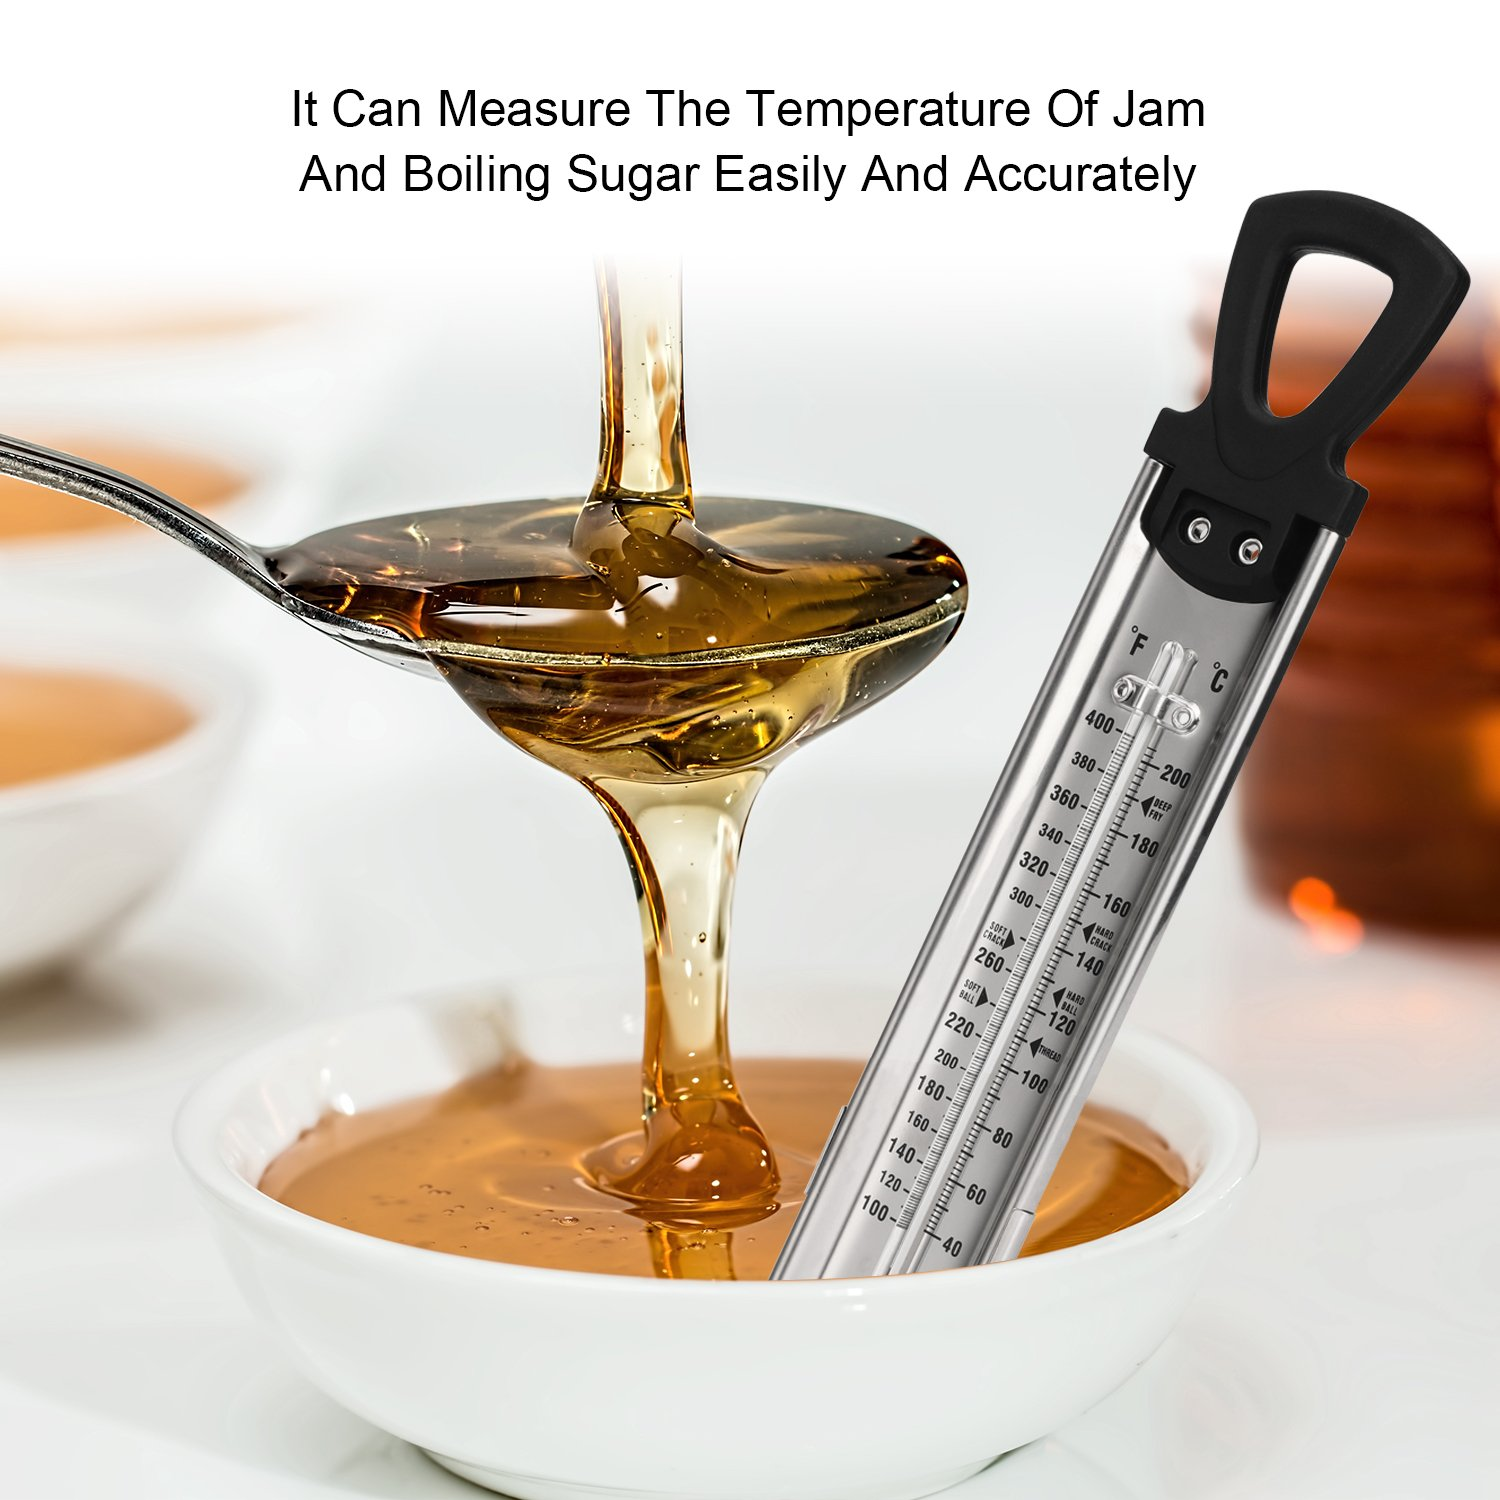 Candy/Jam/Sugar/Syrup Thermometer, Stainless Steel Glass Candy Thermometer With Hanging Hook and Non-toxic Aviation Kerosene Rod Core by Telead (Image #4)